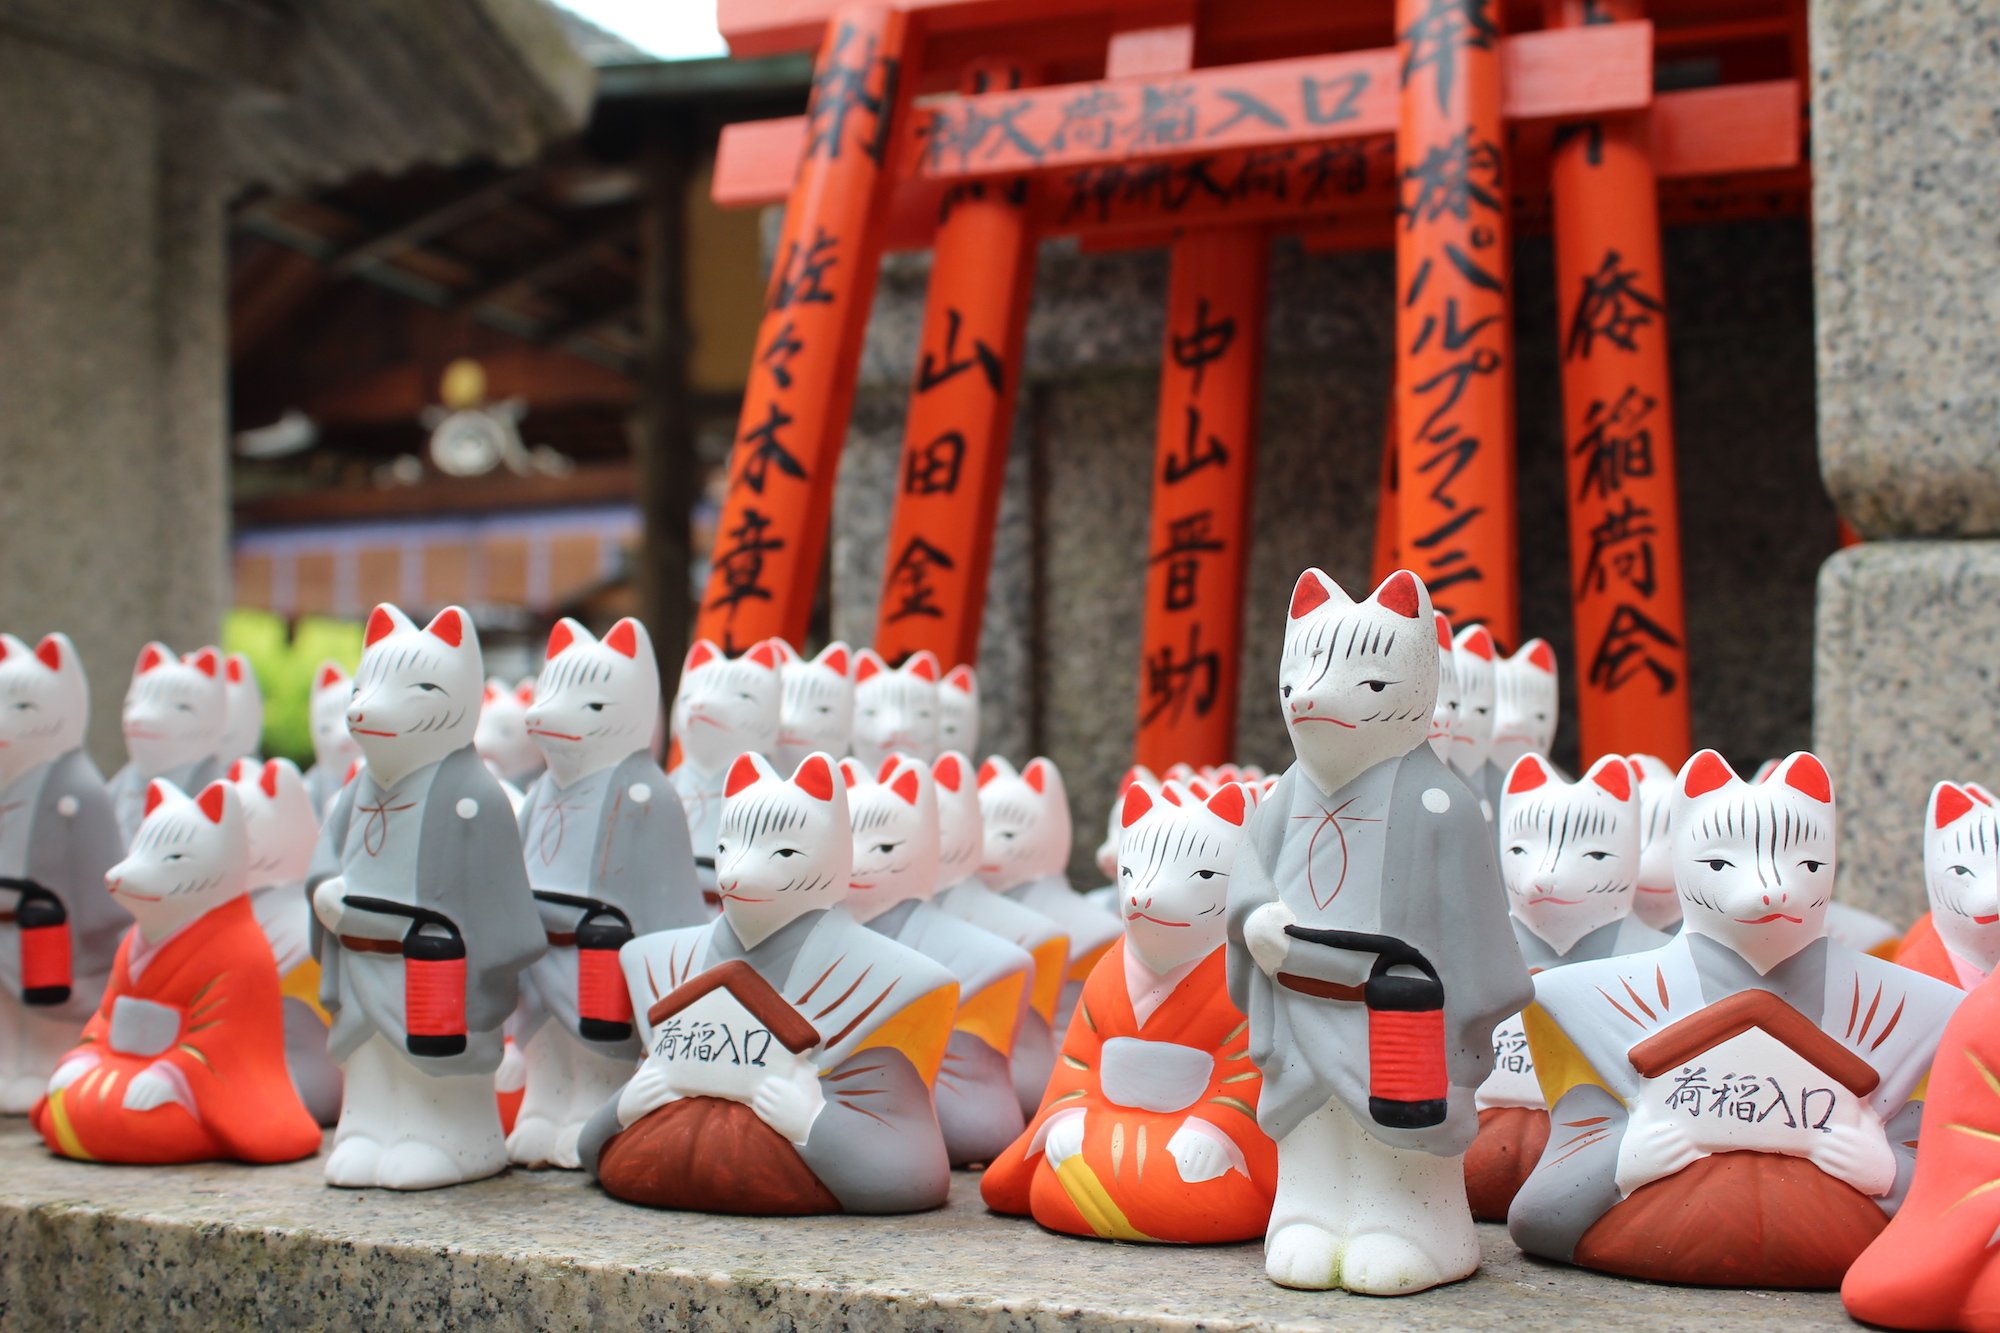 A group of fox figurines at Inari Jinja